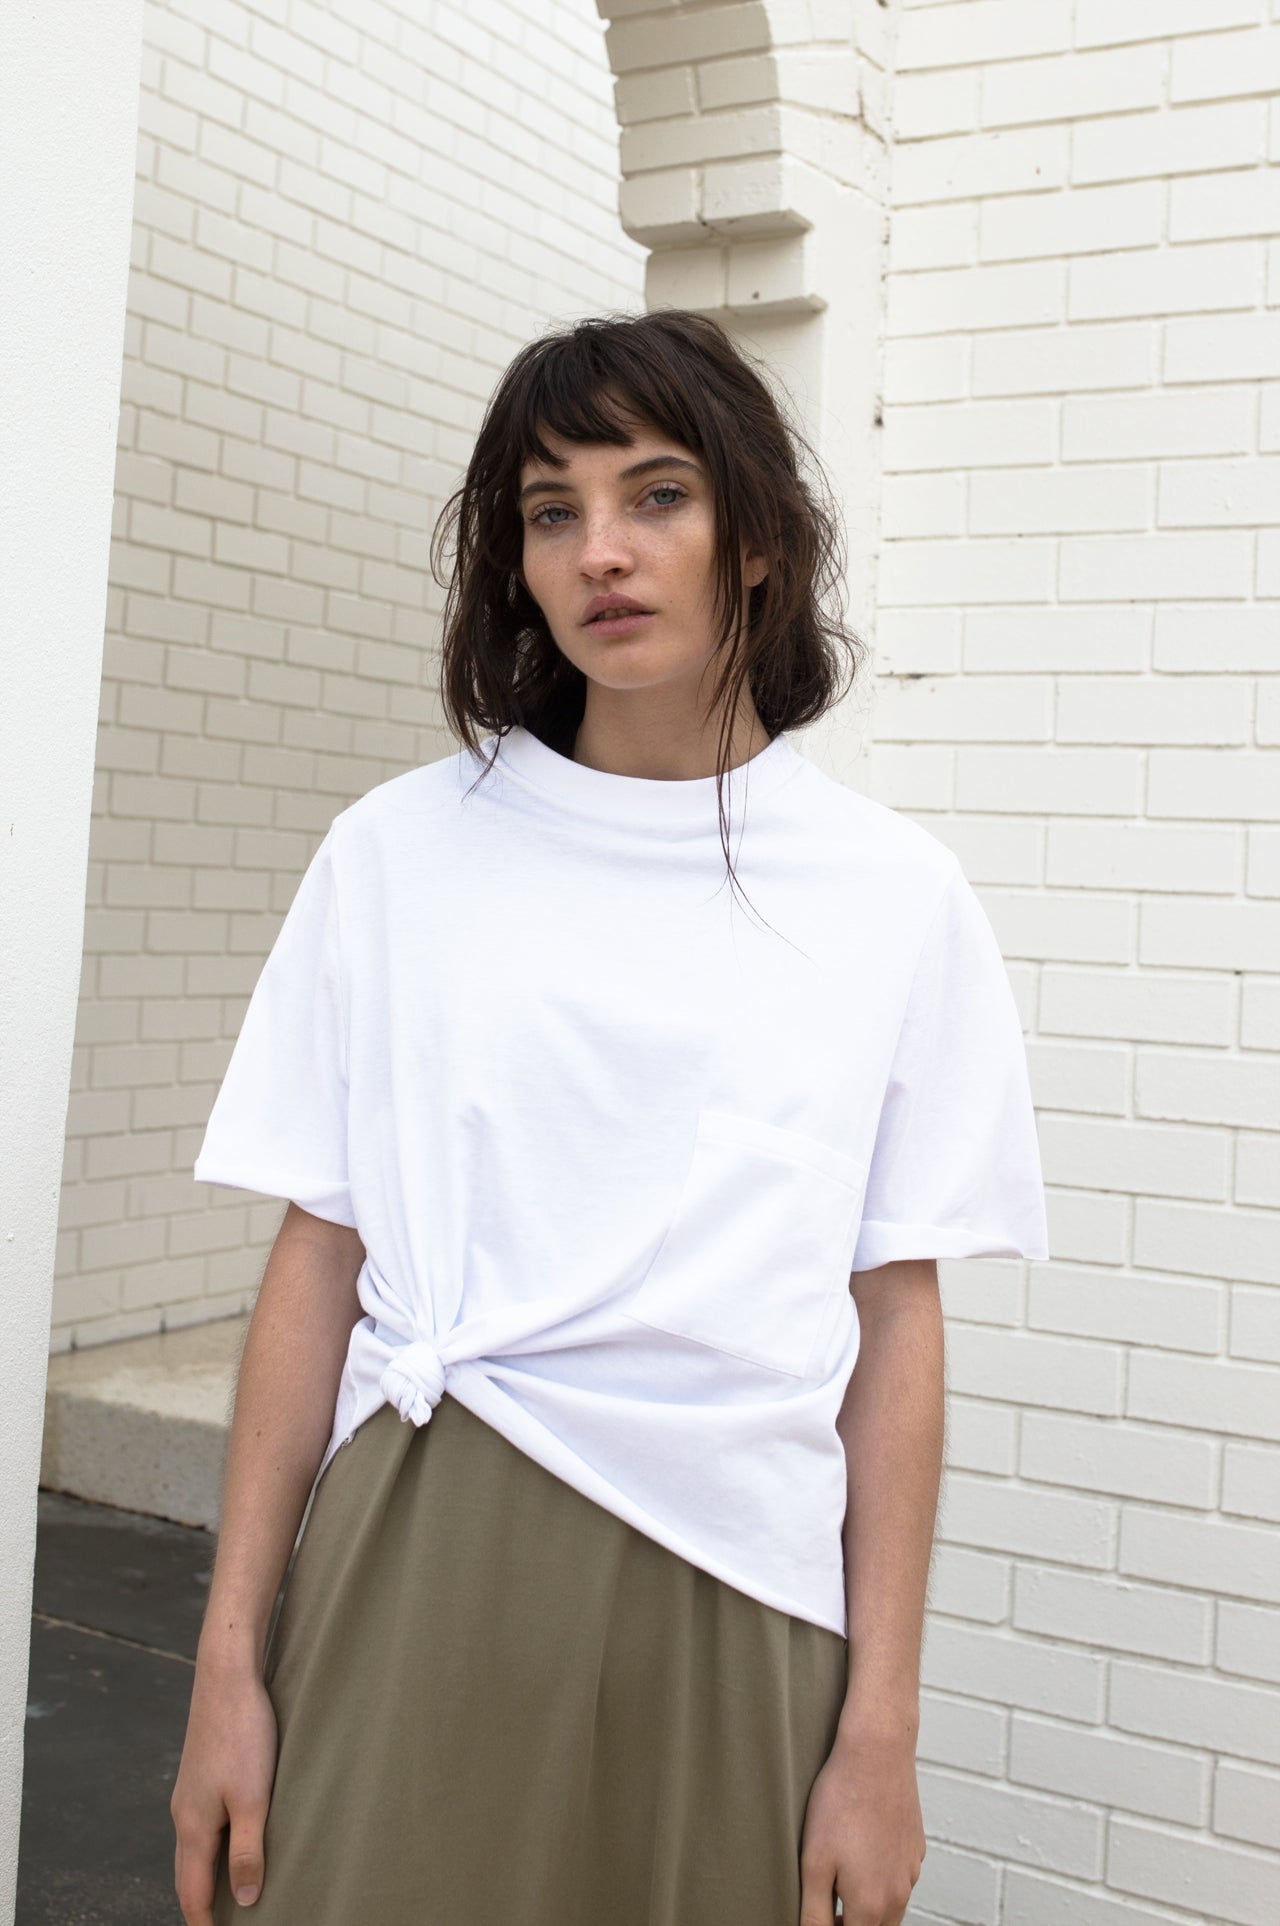 Rib Neck Oversized Pocket Tee - White / Black / Khaki / Navy